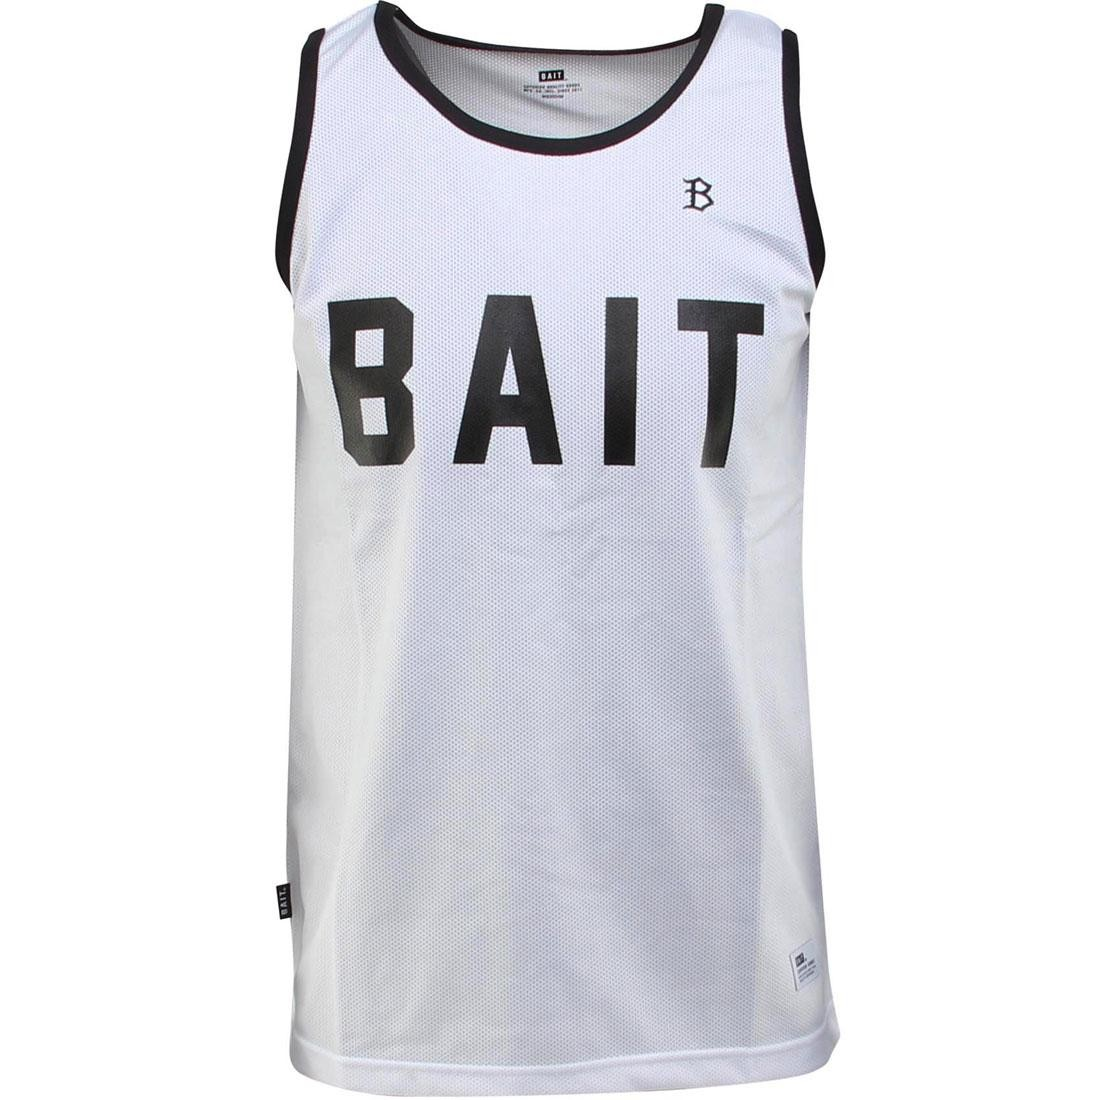 BAIT Logo Fitted Jersey (white)